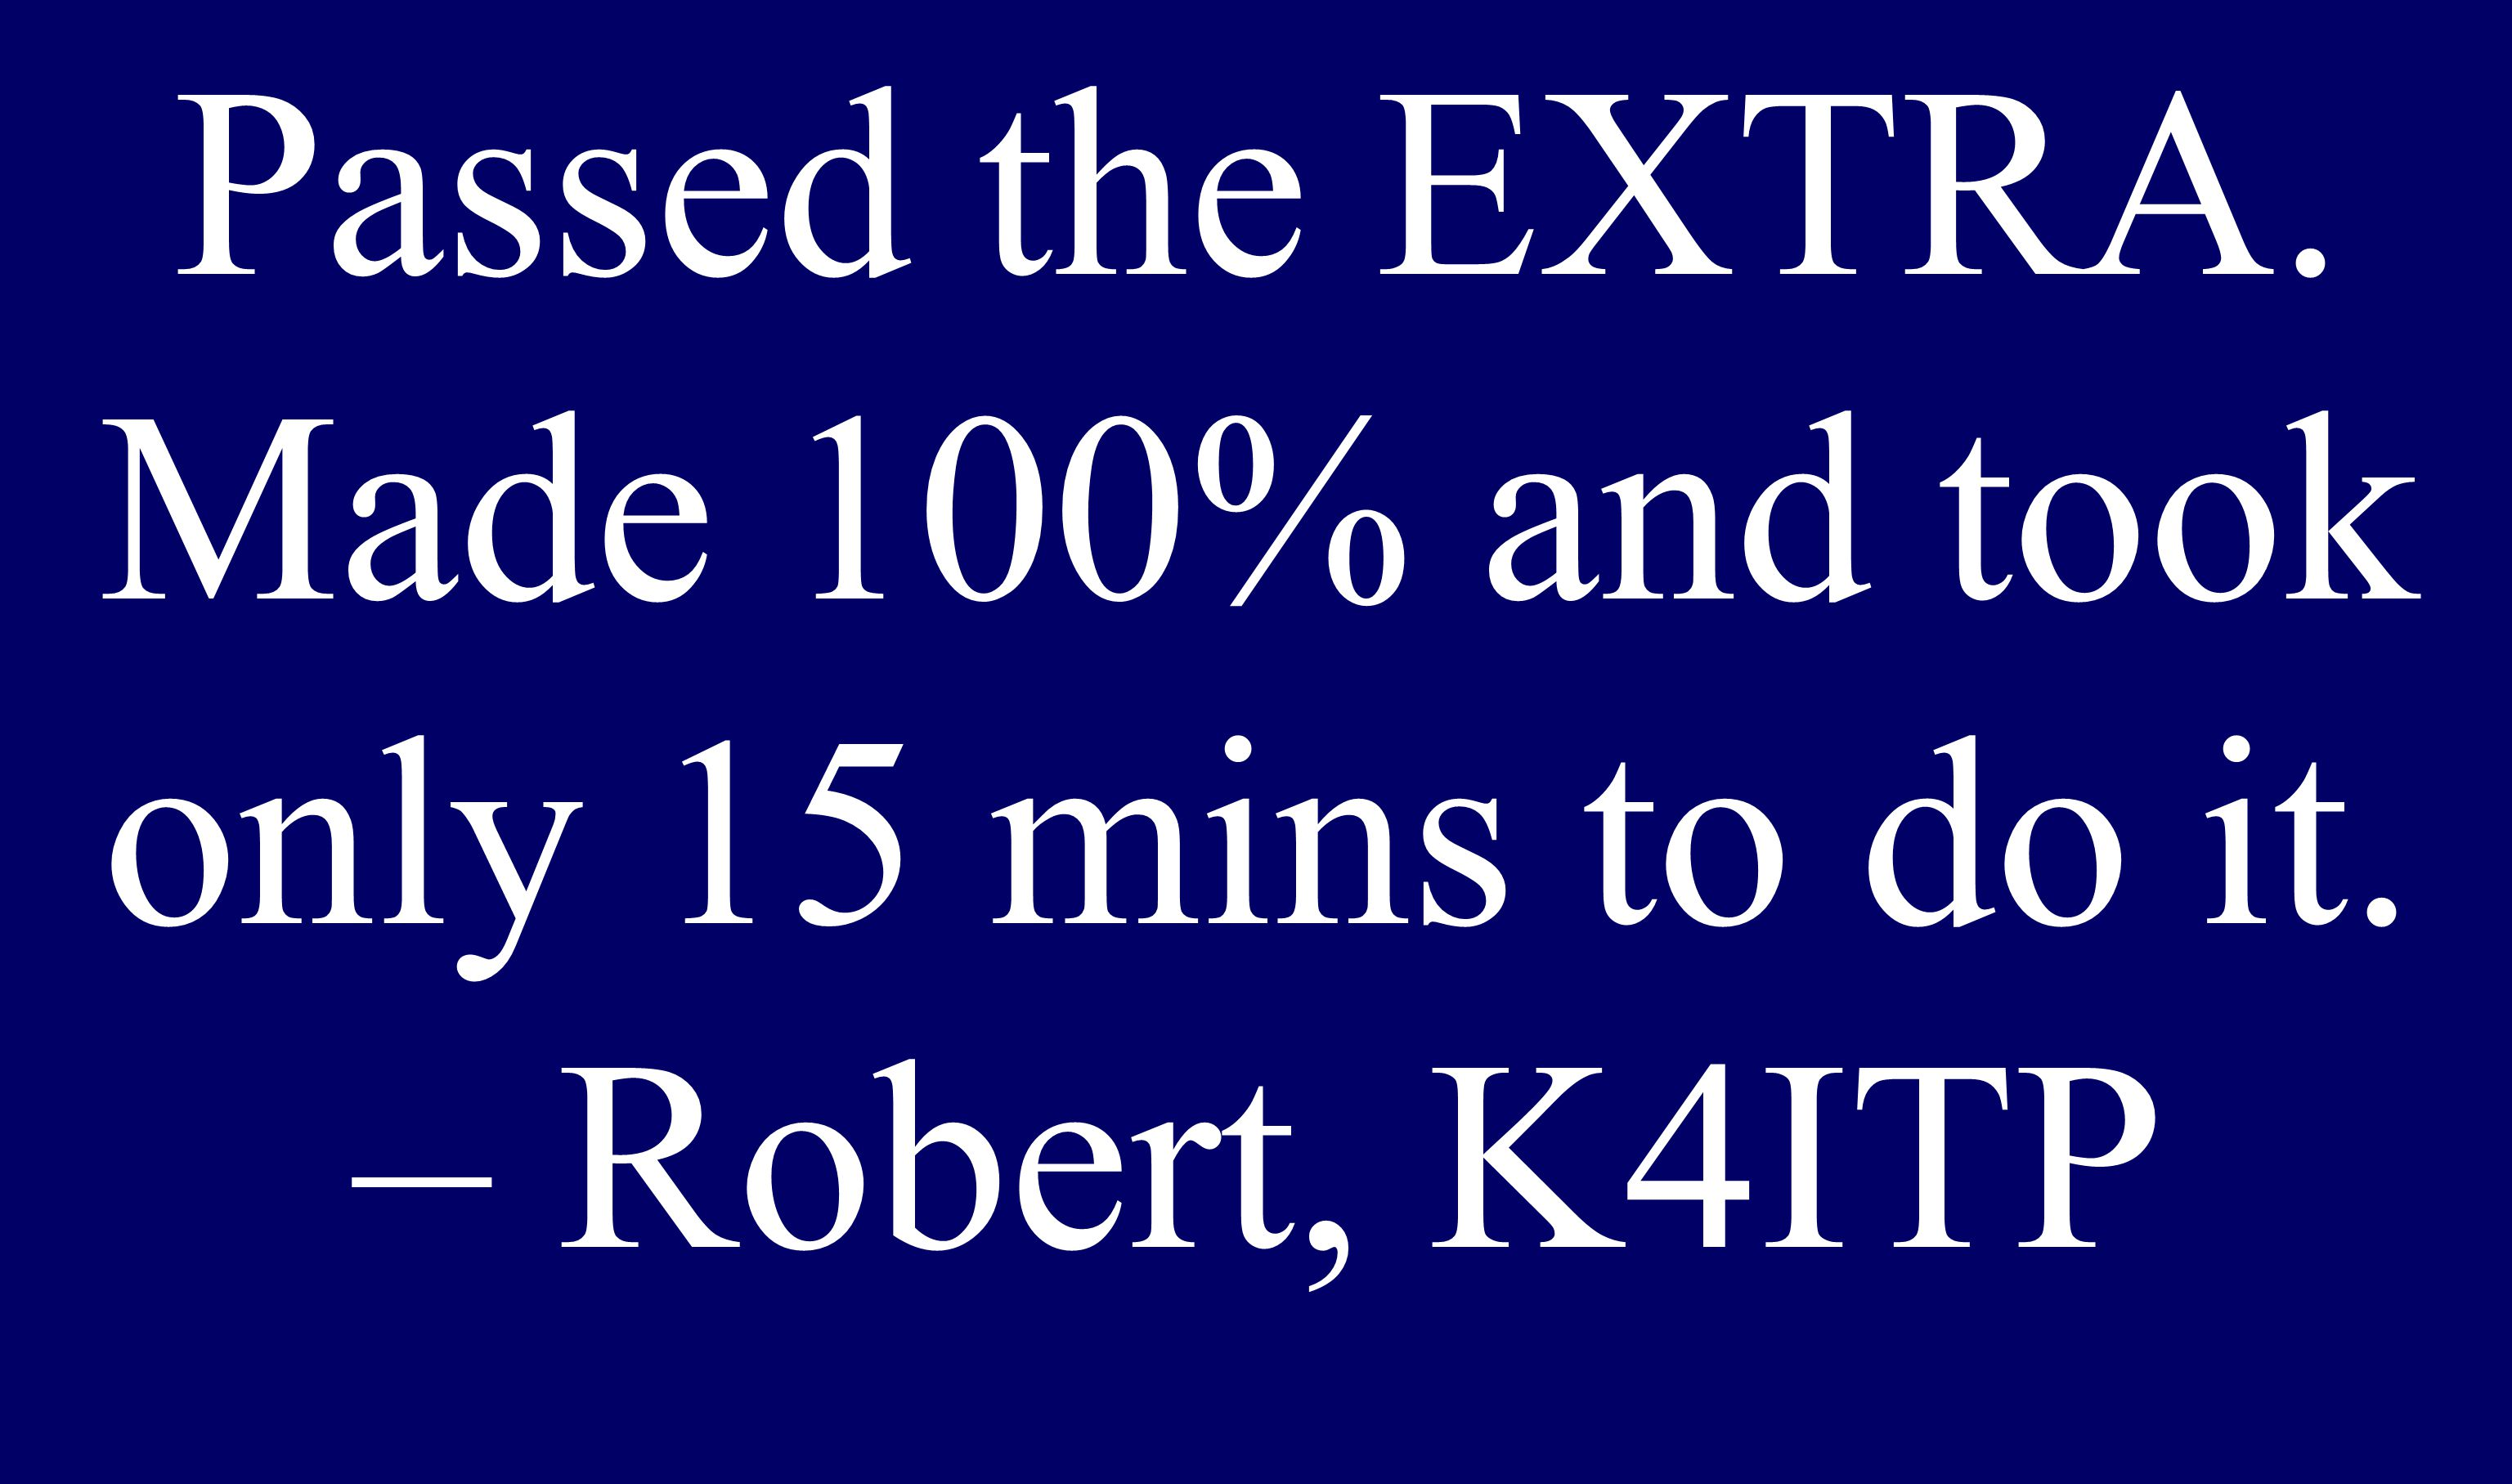 Passed the EXTRA. Made 100% and took only 15 mins to do it. – Robert, K4ITP